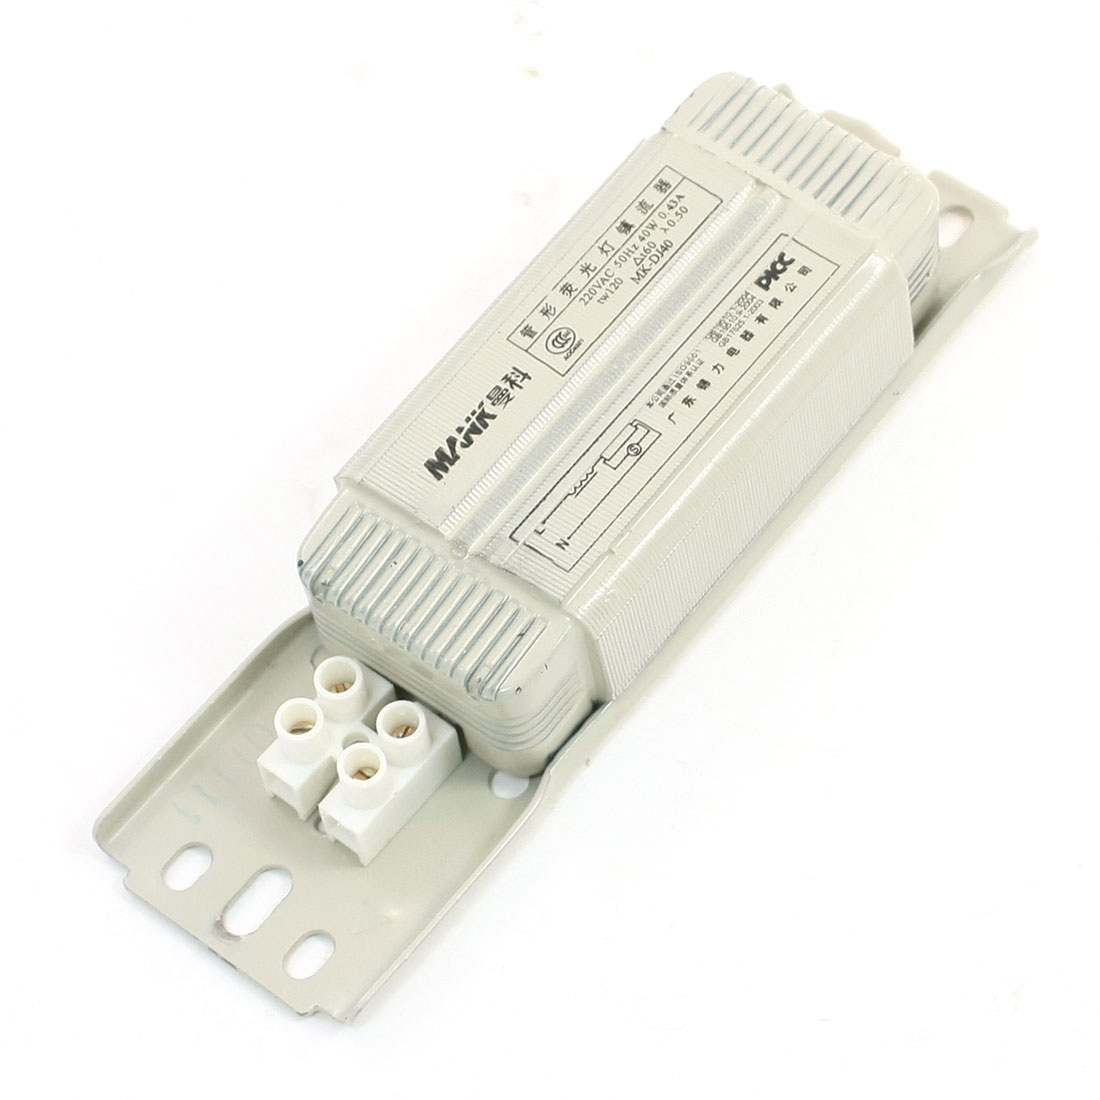 Power Electronic Ballast AC 220V 0.43A for 40W T8 Fluorescent Stripe Tube Lamp